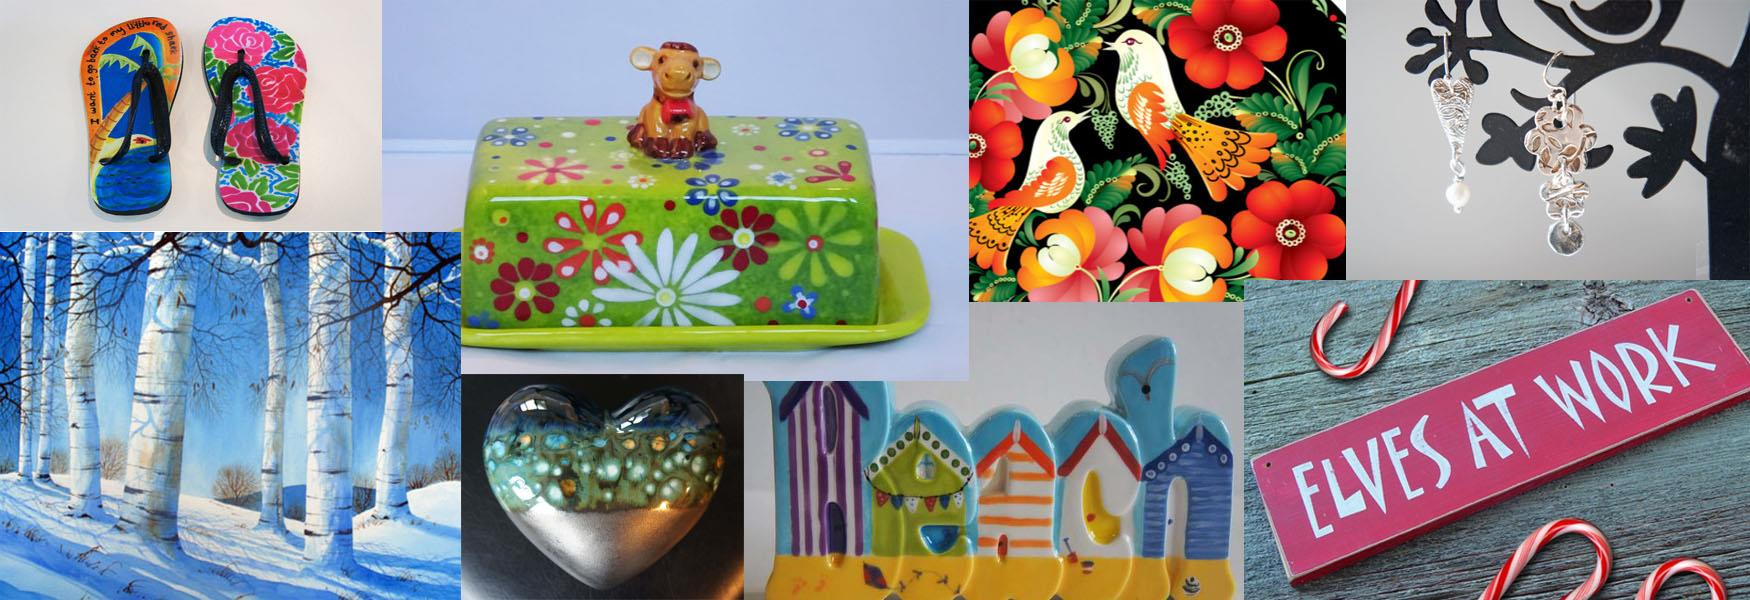 This Art of Mine combination of painting and crafting class products.